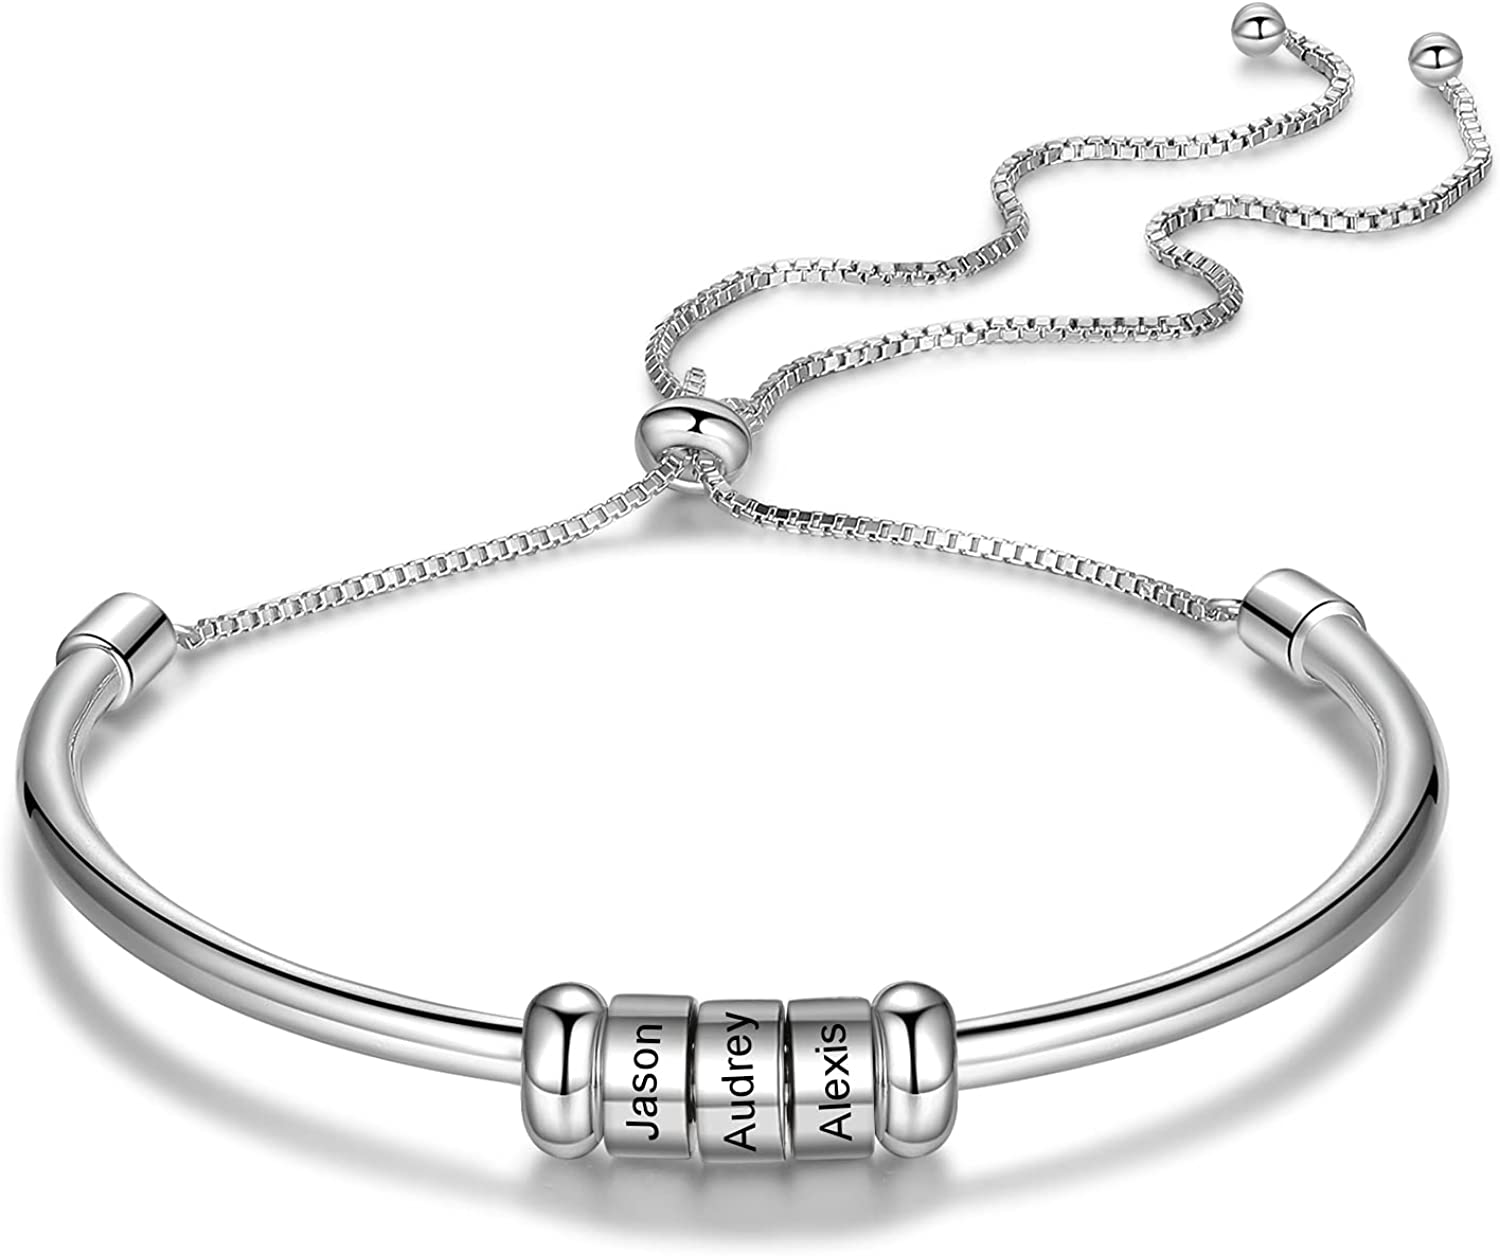 Personalized Name Bracelet Bangle Engraved with 1-6 Names Beads Adjustable Charm Literary Style Snake Chain Link Anniversary Birthday Jewelry Gift for Women Wife Girlfriend